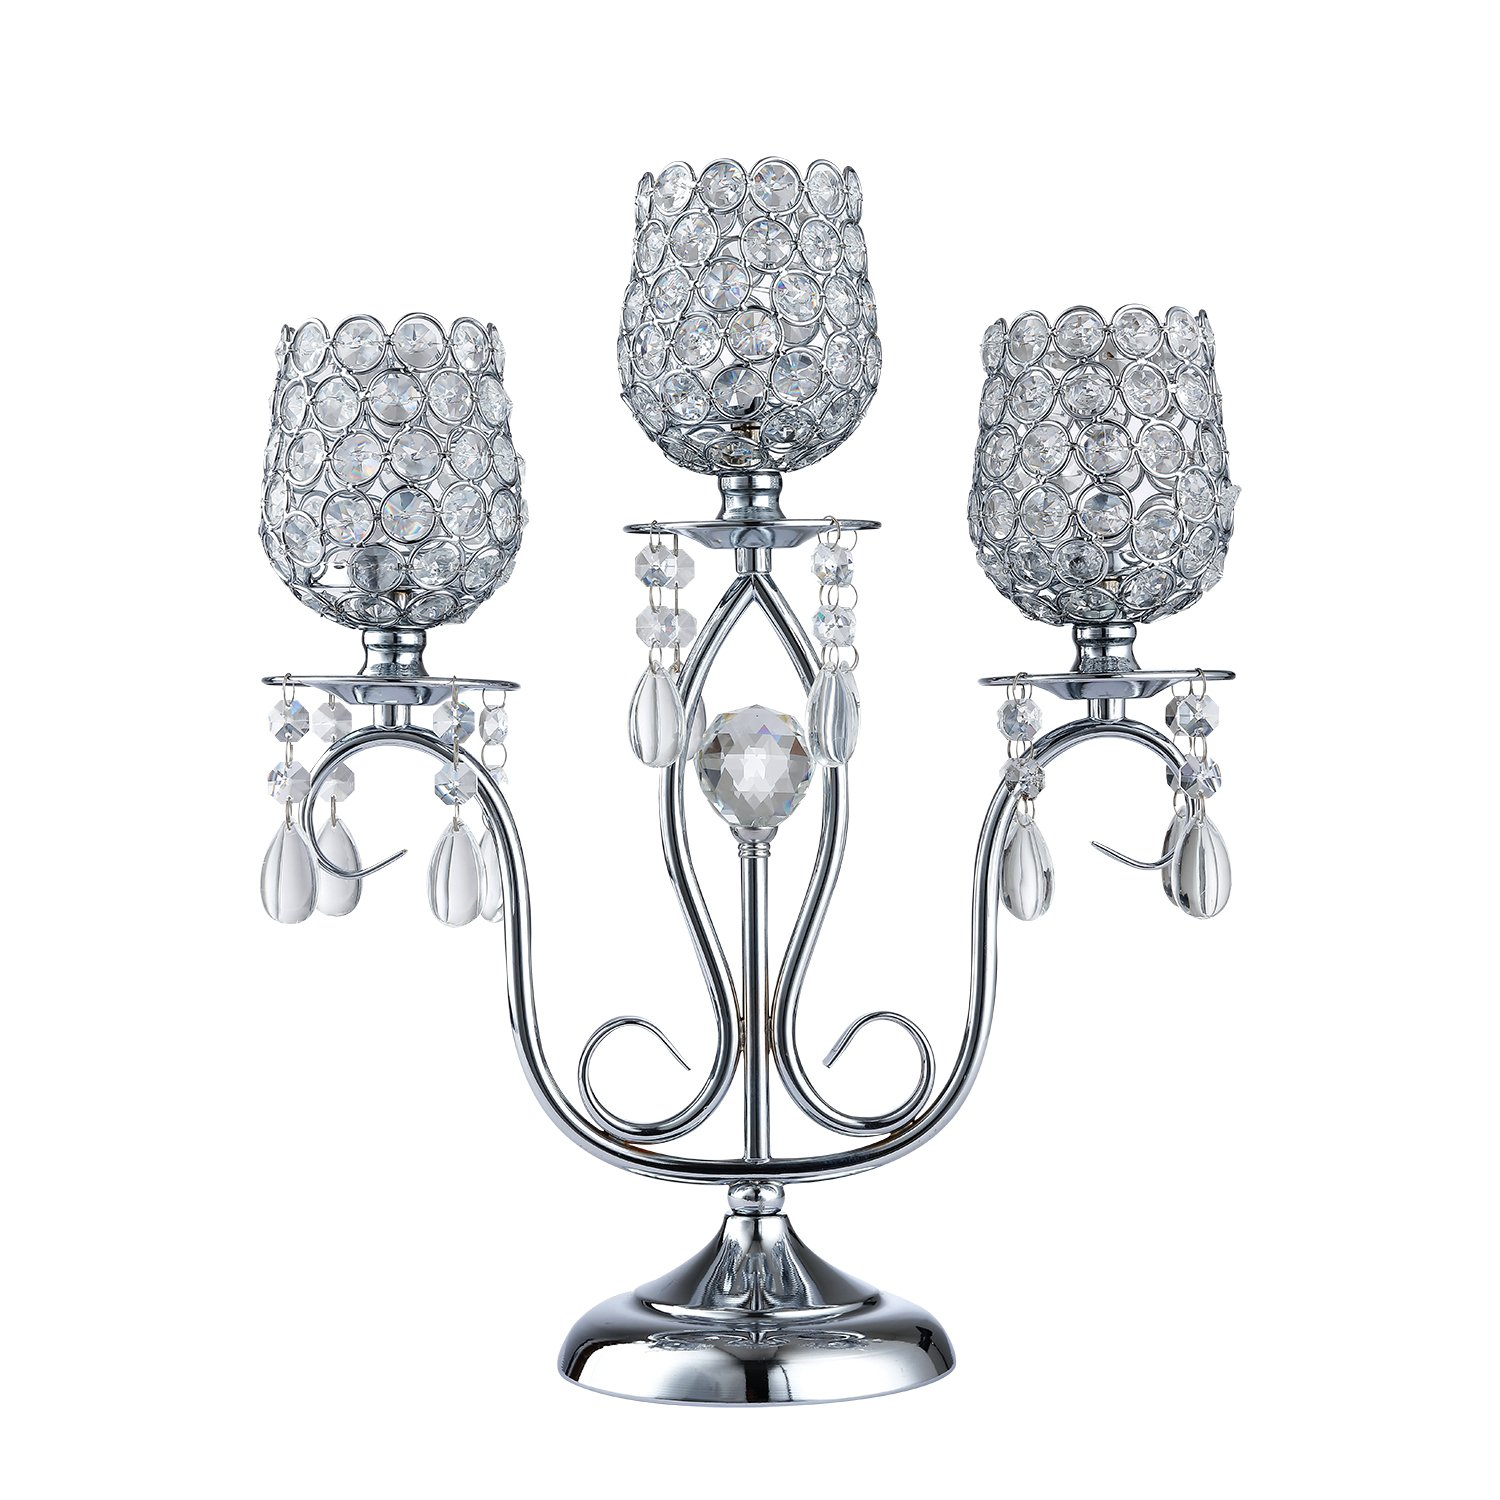 Thaiconsistent Silver candelabra centerpiece 3 arm candle holder crystal for Wedding Birthday Festival Housewarming Coffee Candlelit Banquet Dining Table Fireplace Wall Candlestick by Thaiconsistent